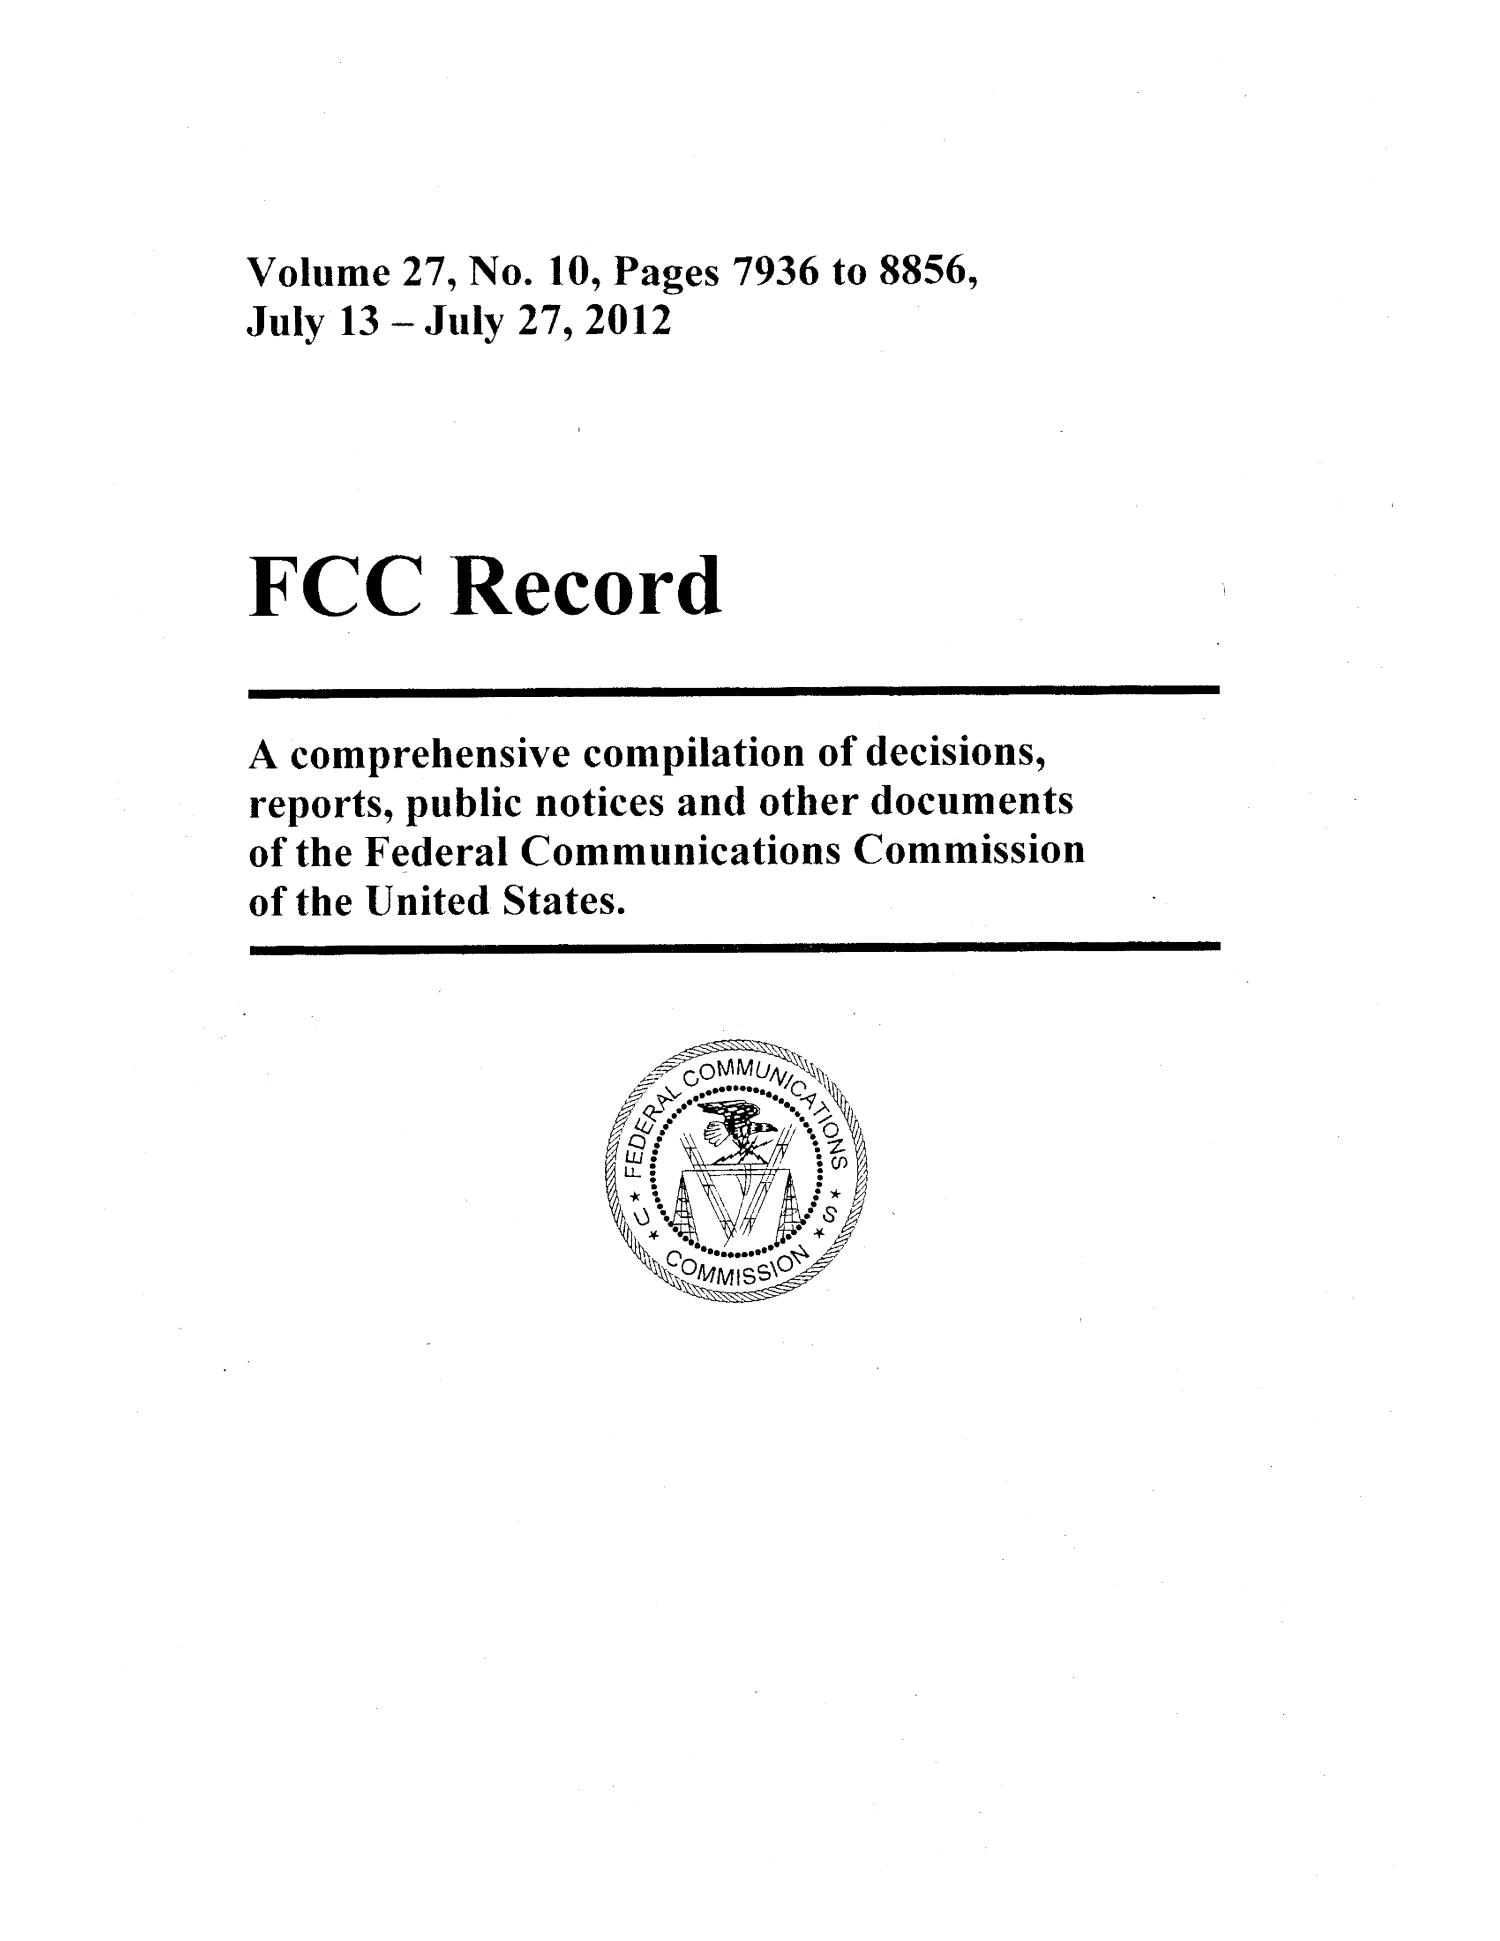 FCC Record, Volume 27, No. 10, Pages 7936 to [8849], July 13 - July 27, 2012                                                                                                      Title Page